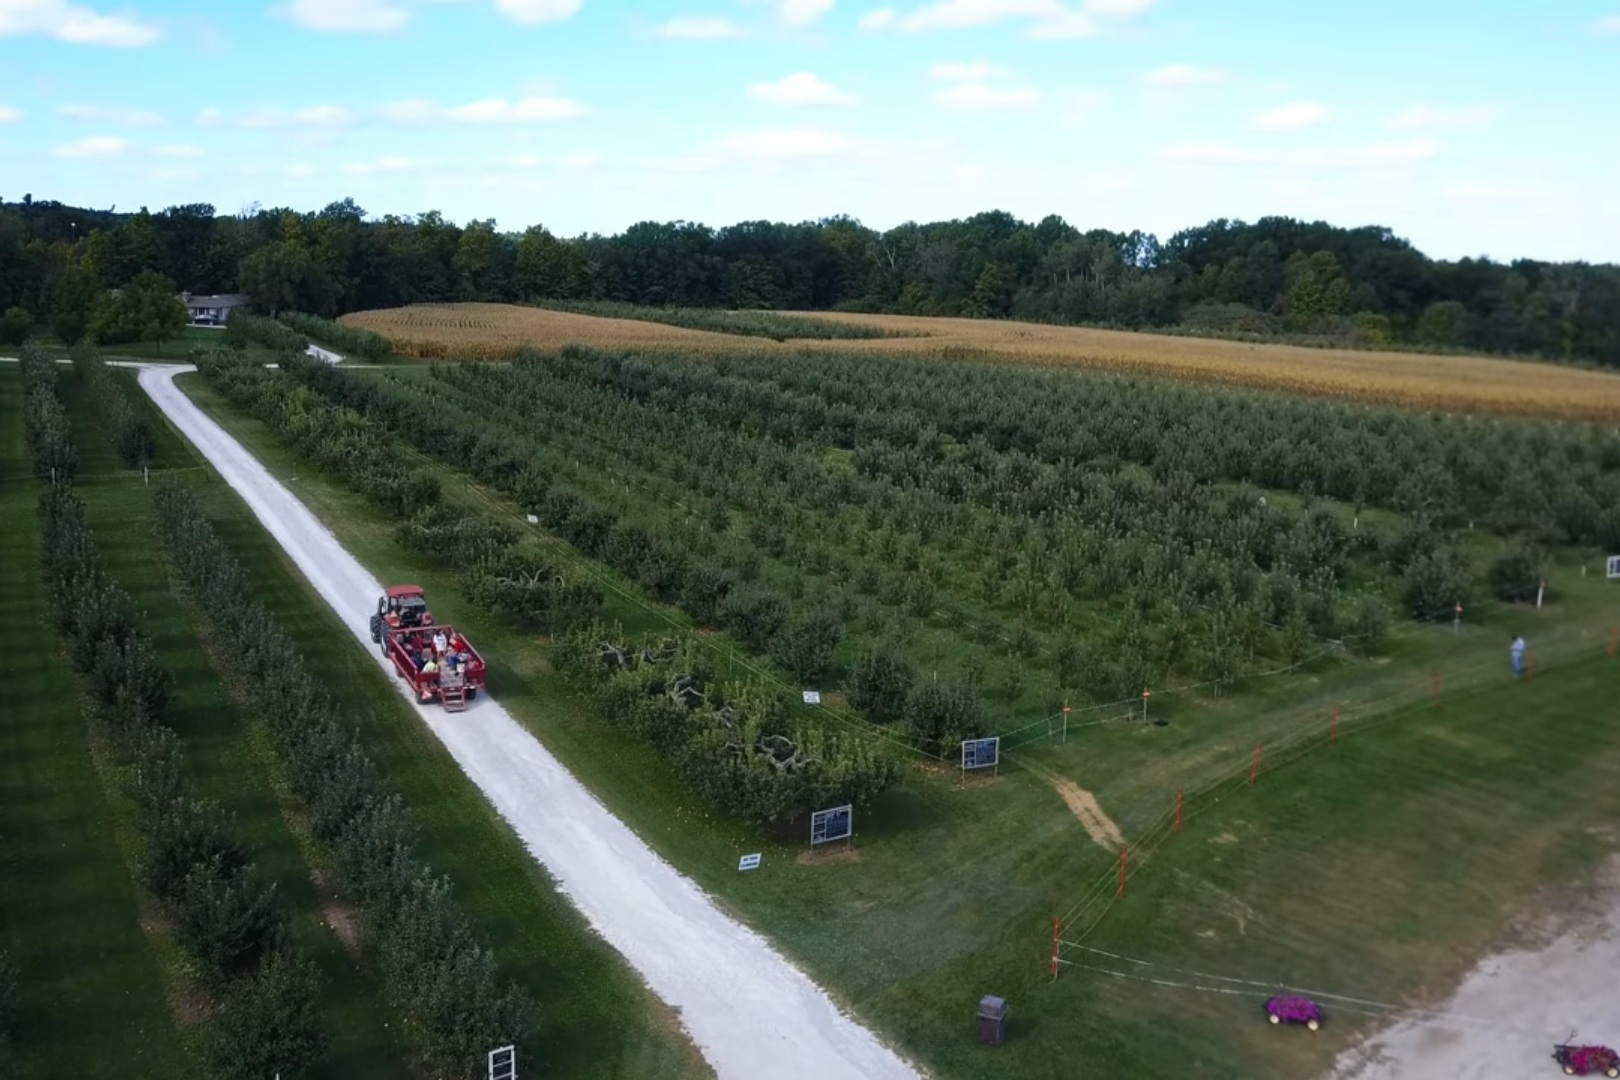 Pick your Own Apples - Starting August 20th 2019 Wheelbarrow Orchards will be open for the apple picking season offering- Apple Picking - Wagon Rides - Baked Goods - Harvest Goodies products - Fraser's Craft Cider - Farm Photo Opportunities - No Admission Fee -Fresh Pressed Cider - Fun For All Ages